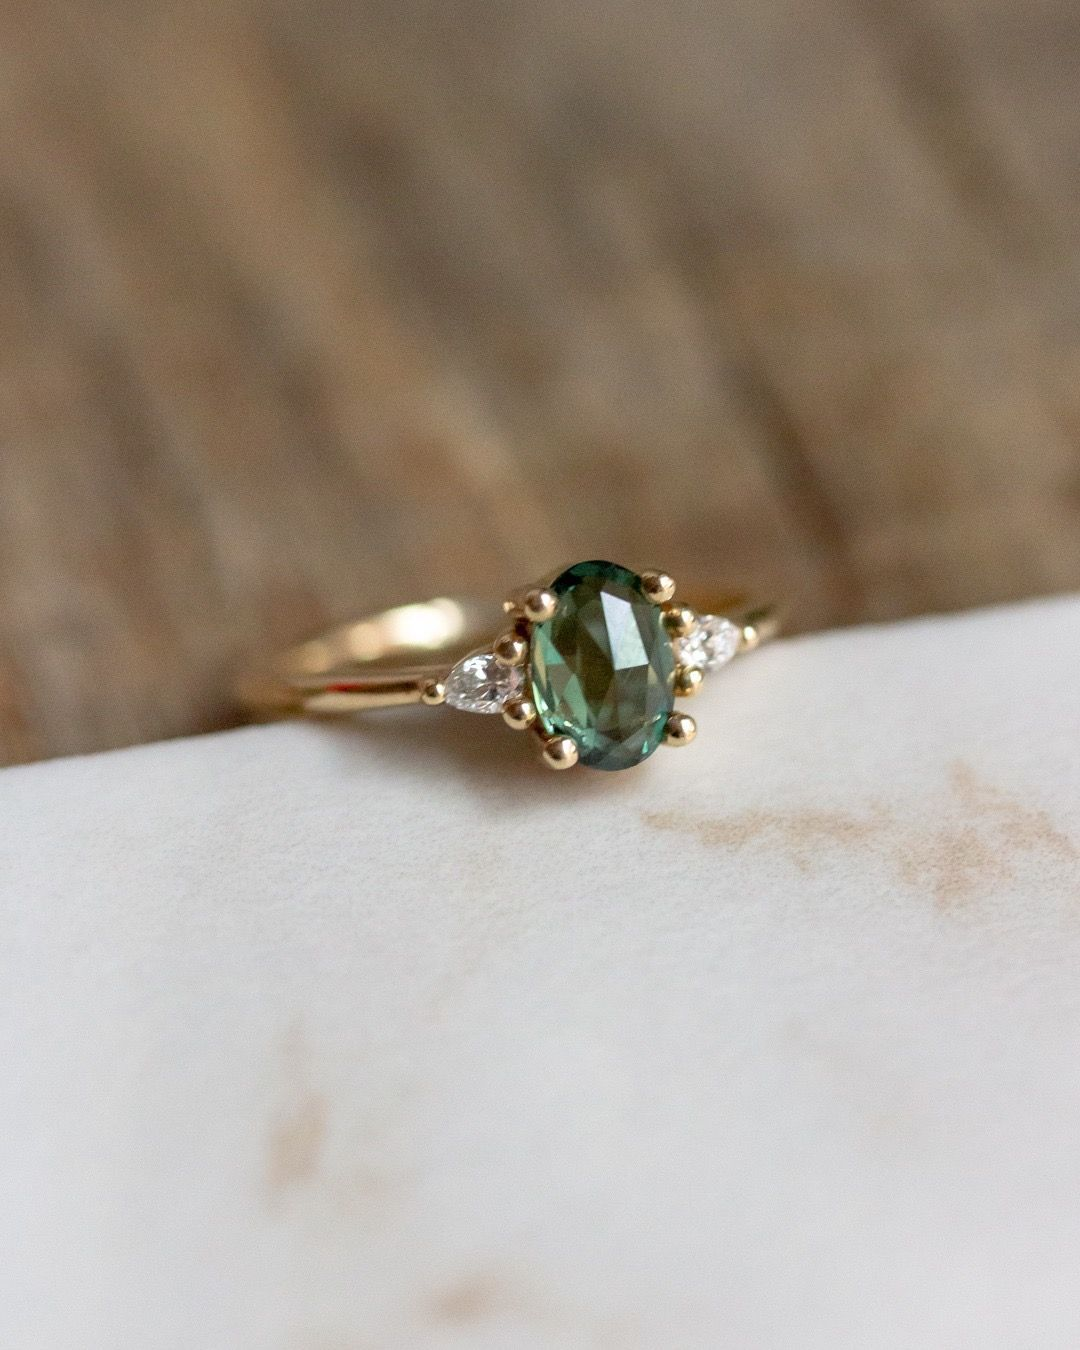 Engagement Rings Vancouver Vintage And Antique Rings Evorden Antique Engagement Evorden Rings Vancouv In 2020 Antique Rings Vintage Engagement Rings Jewelry